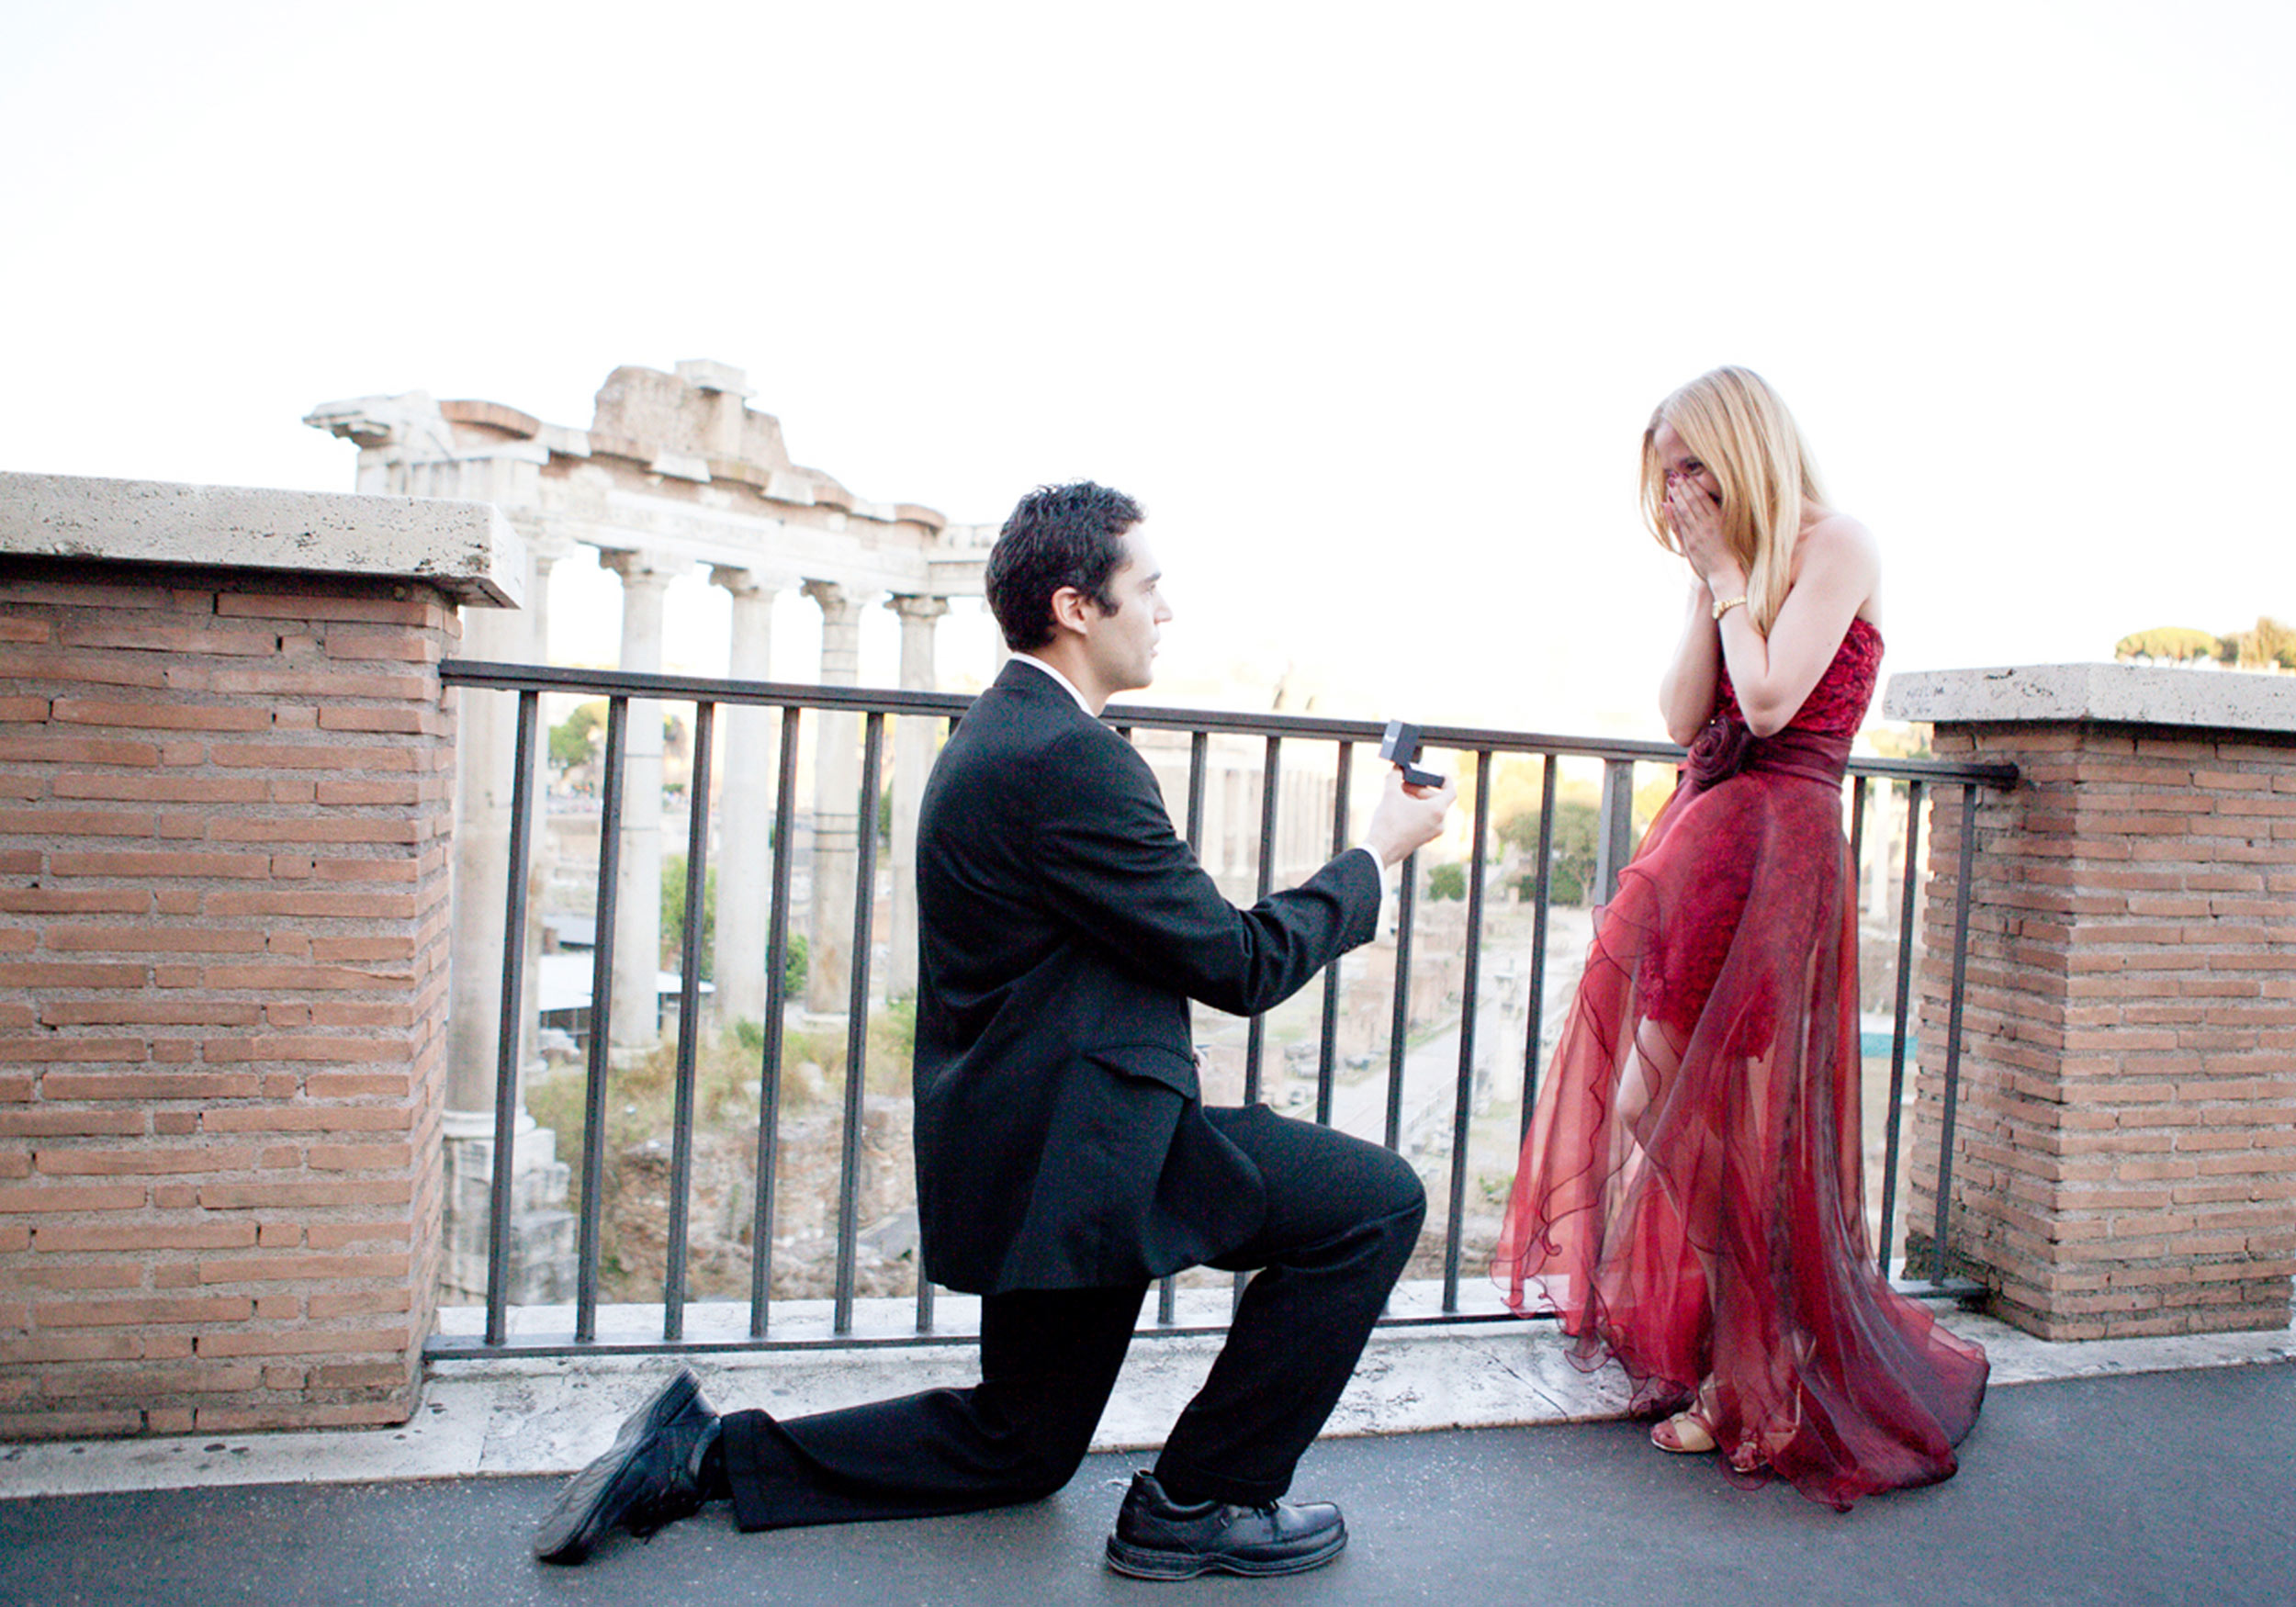 Valentine s day propose lines and romantic love quotes - Boy propose girl with rose image ...